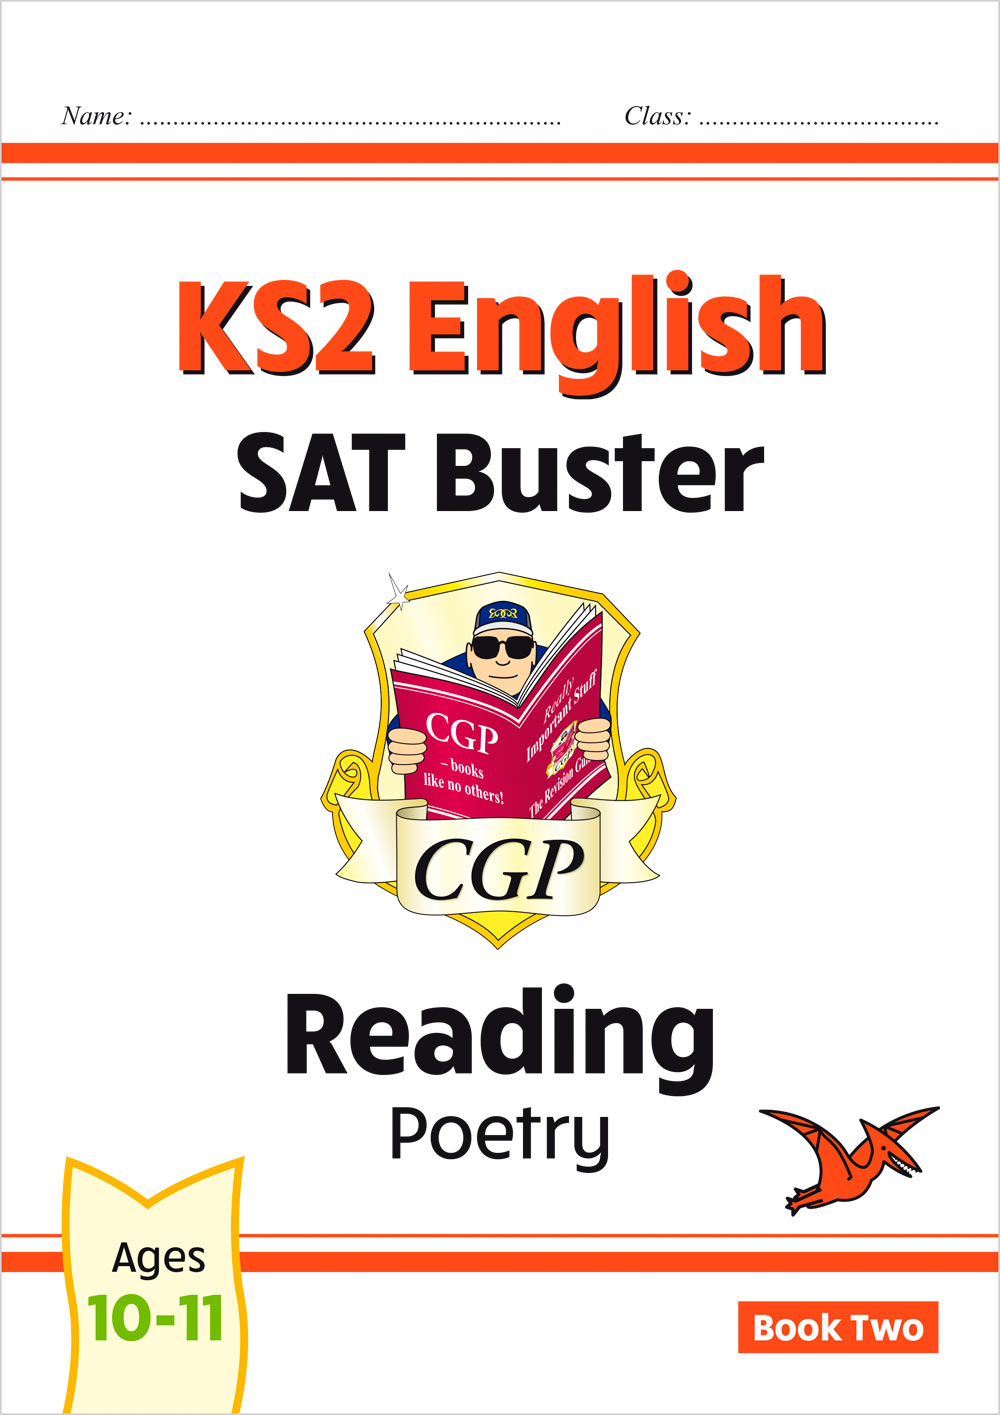 E6FRP222 - New KS2 English Reading SAT Buster: Poetry - Book 2